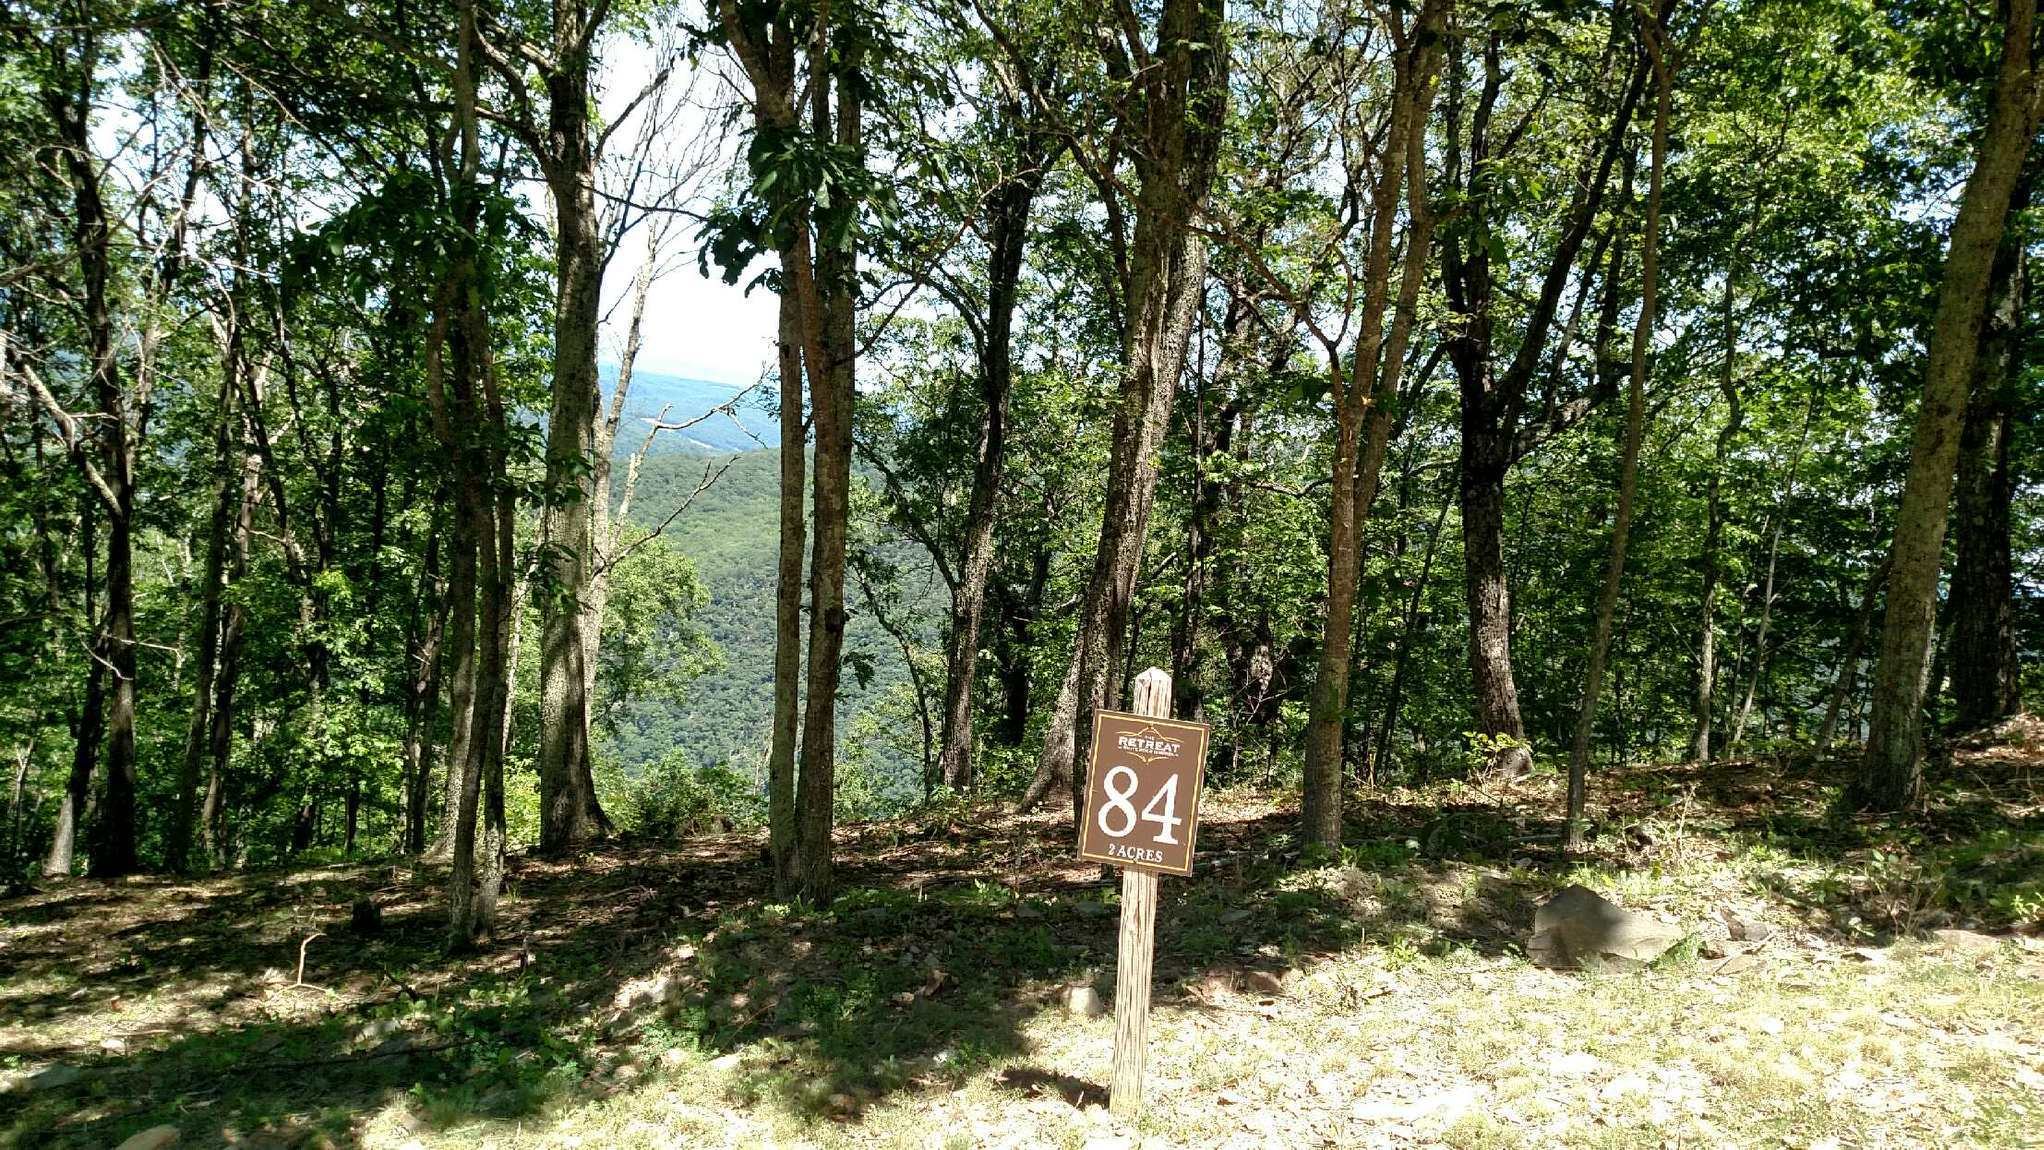 2-acre lot, #84, for sale at the Retreat, White Rock Mtn, Caldwell WV